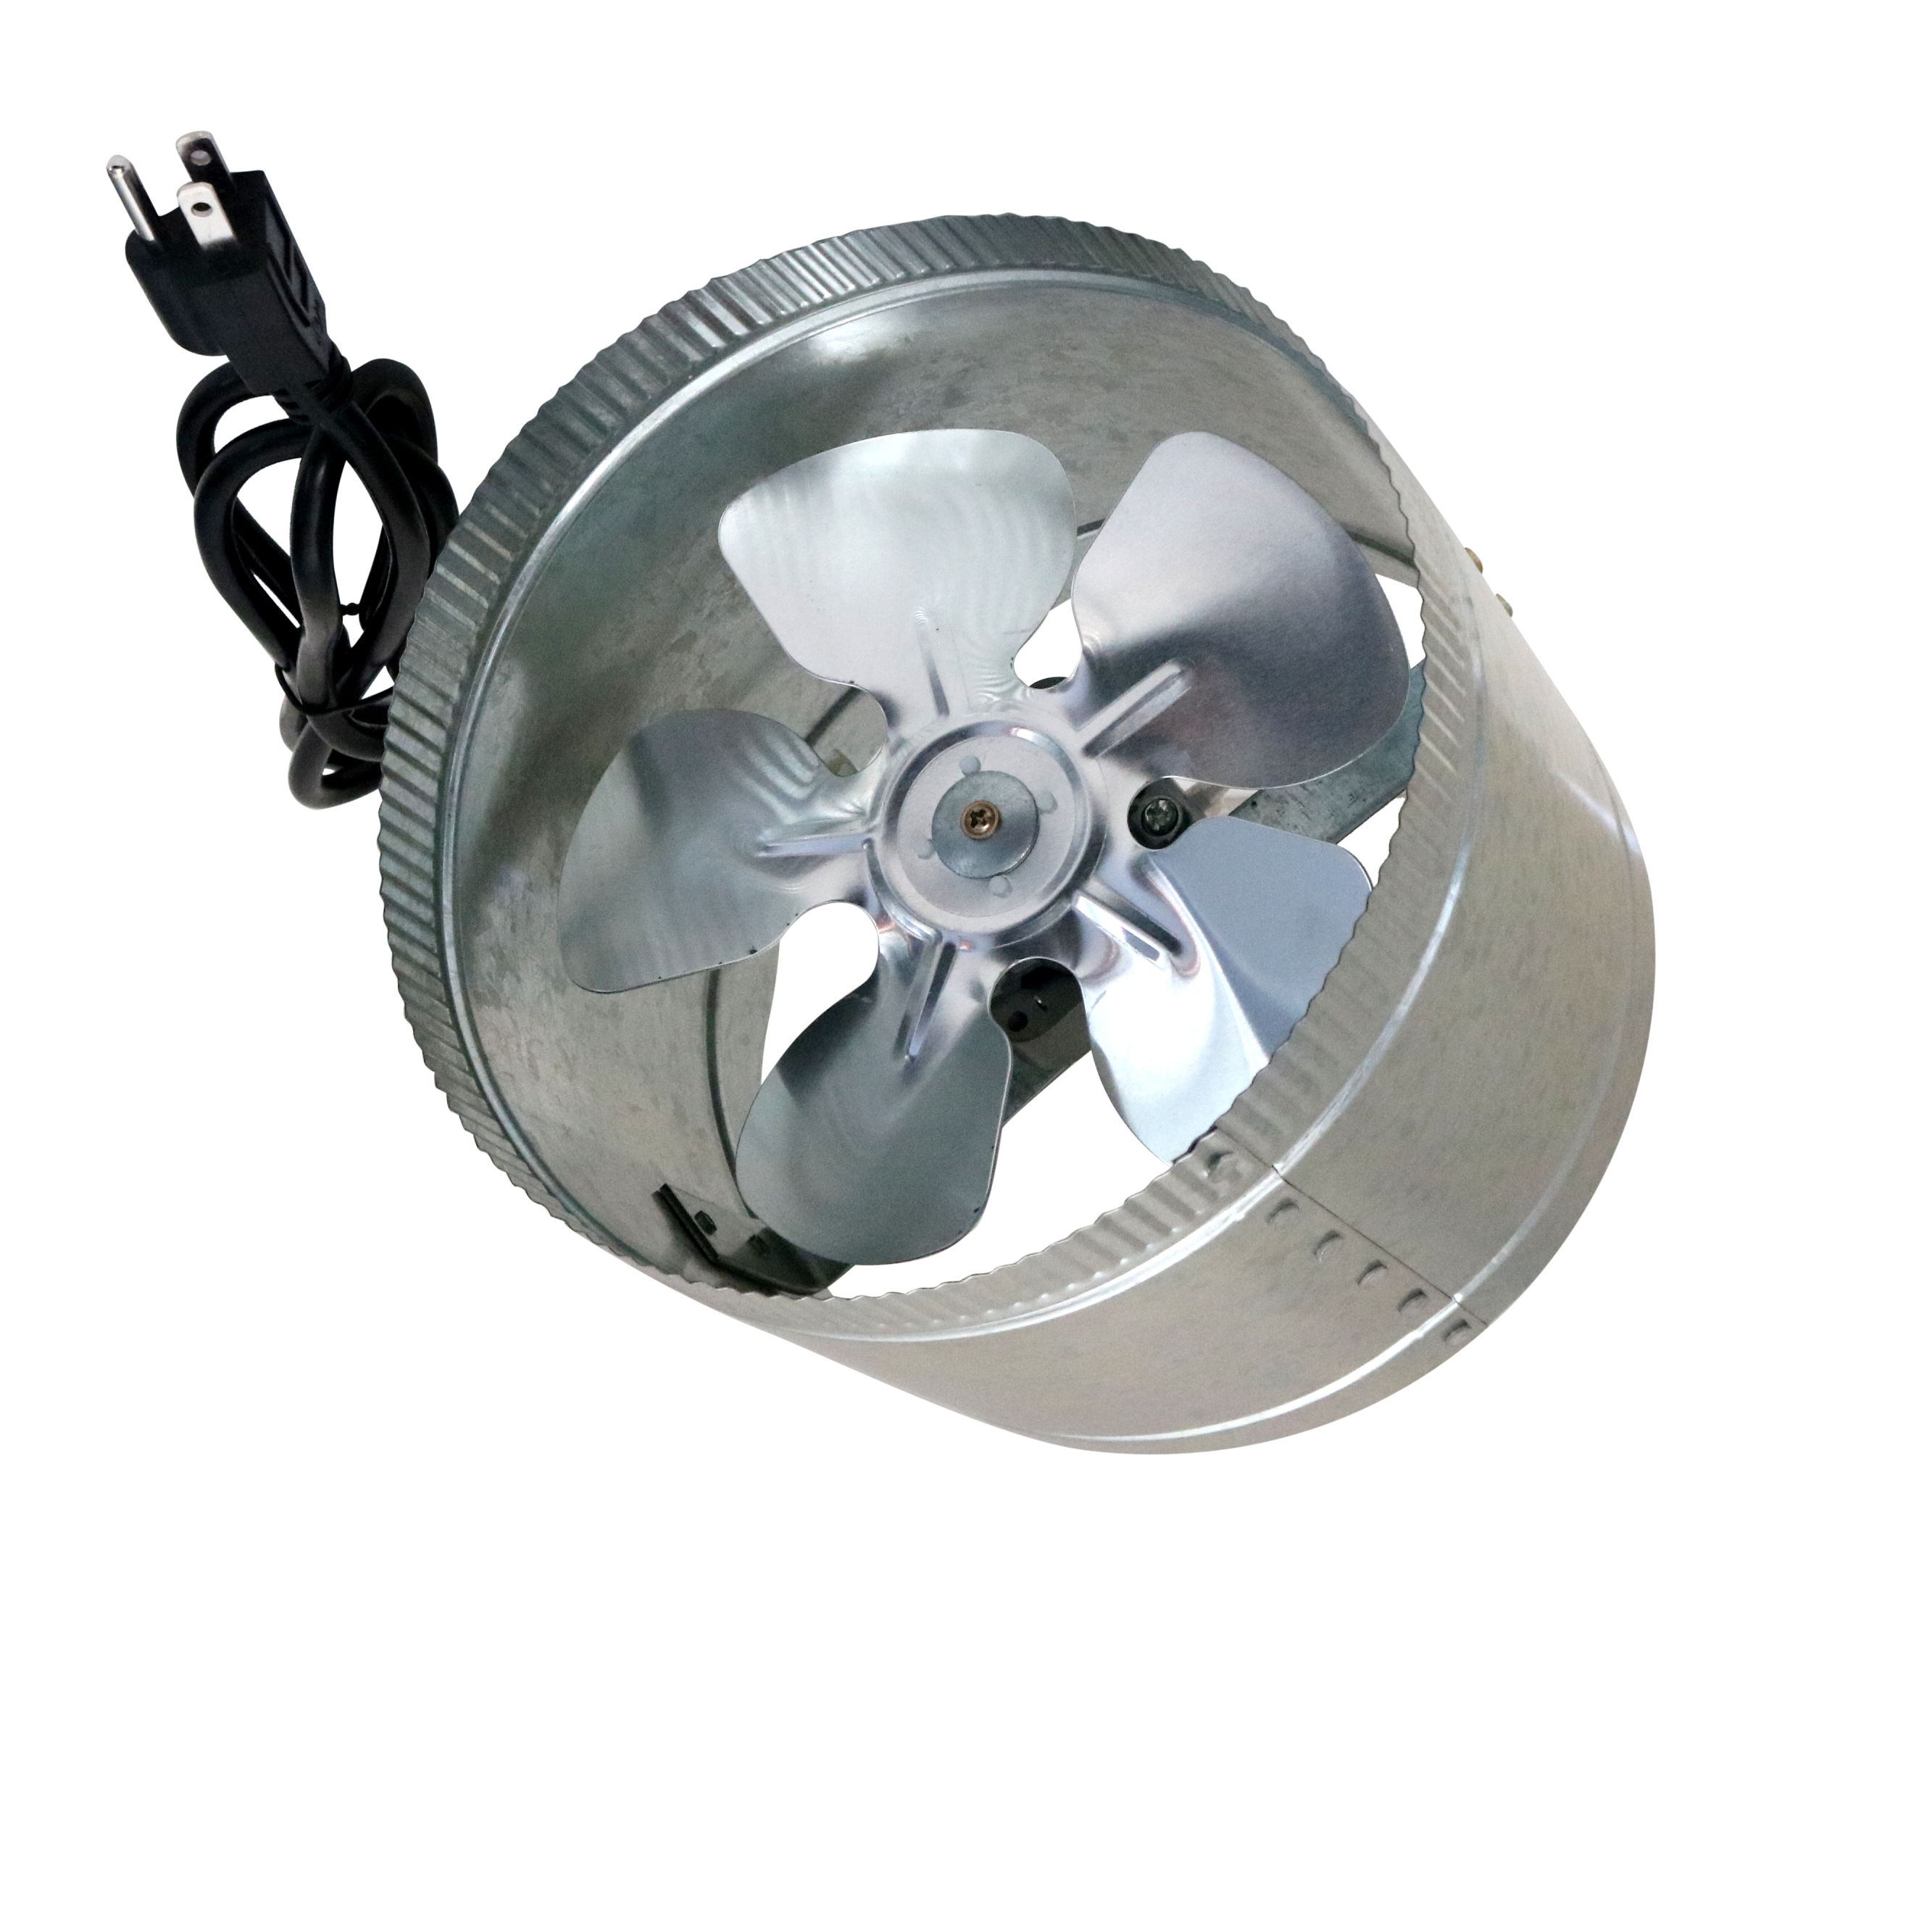 High quality 4 6 8 10 inch inline Duct Booster Fan for Grow Tent with low noise